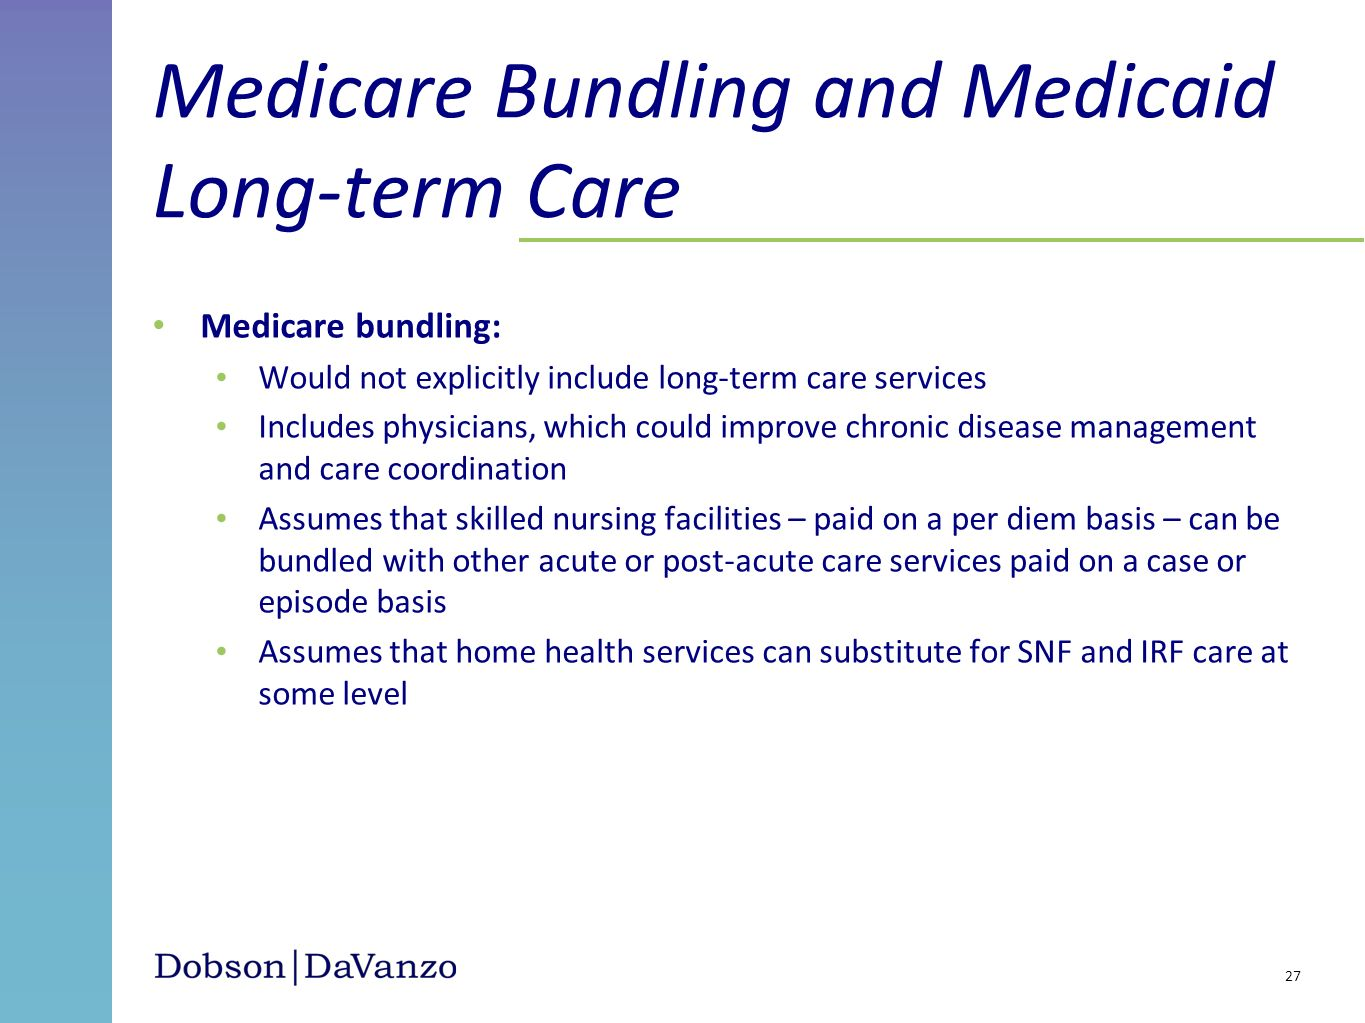 Medicare bundling: Would not explicitly include long-term care services Includes physicians, which could improve chronic disease management and care c